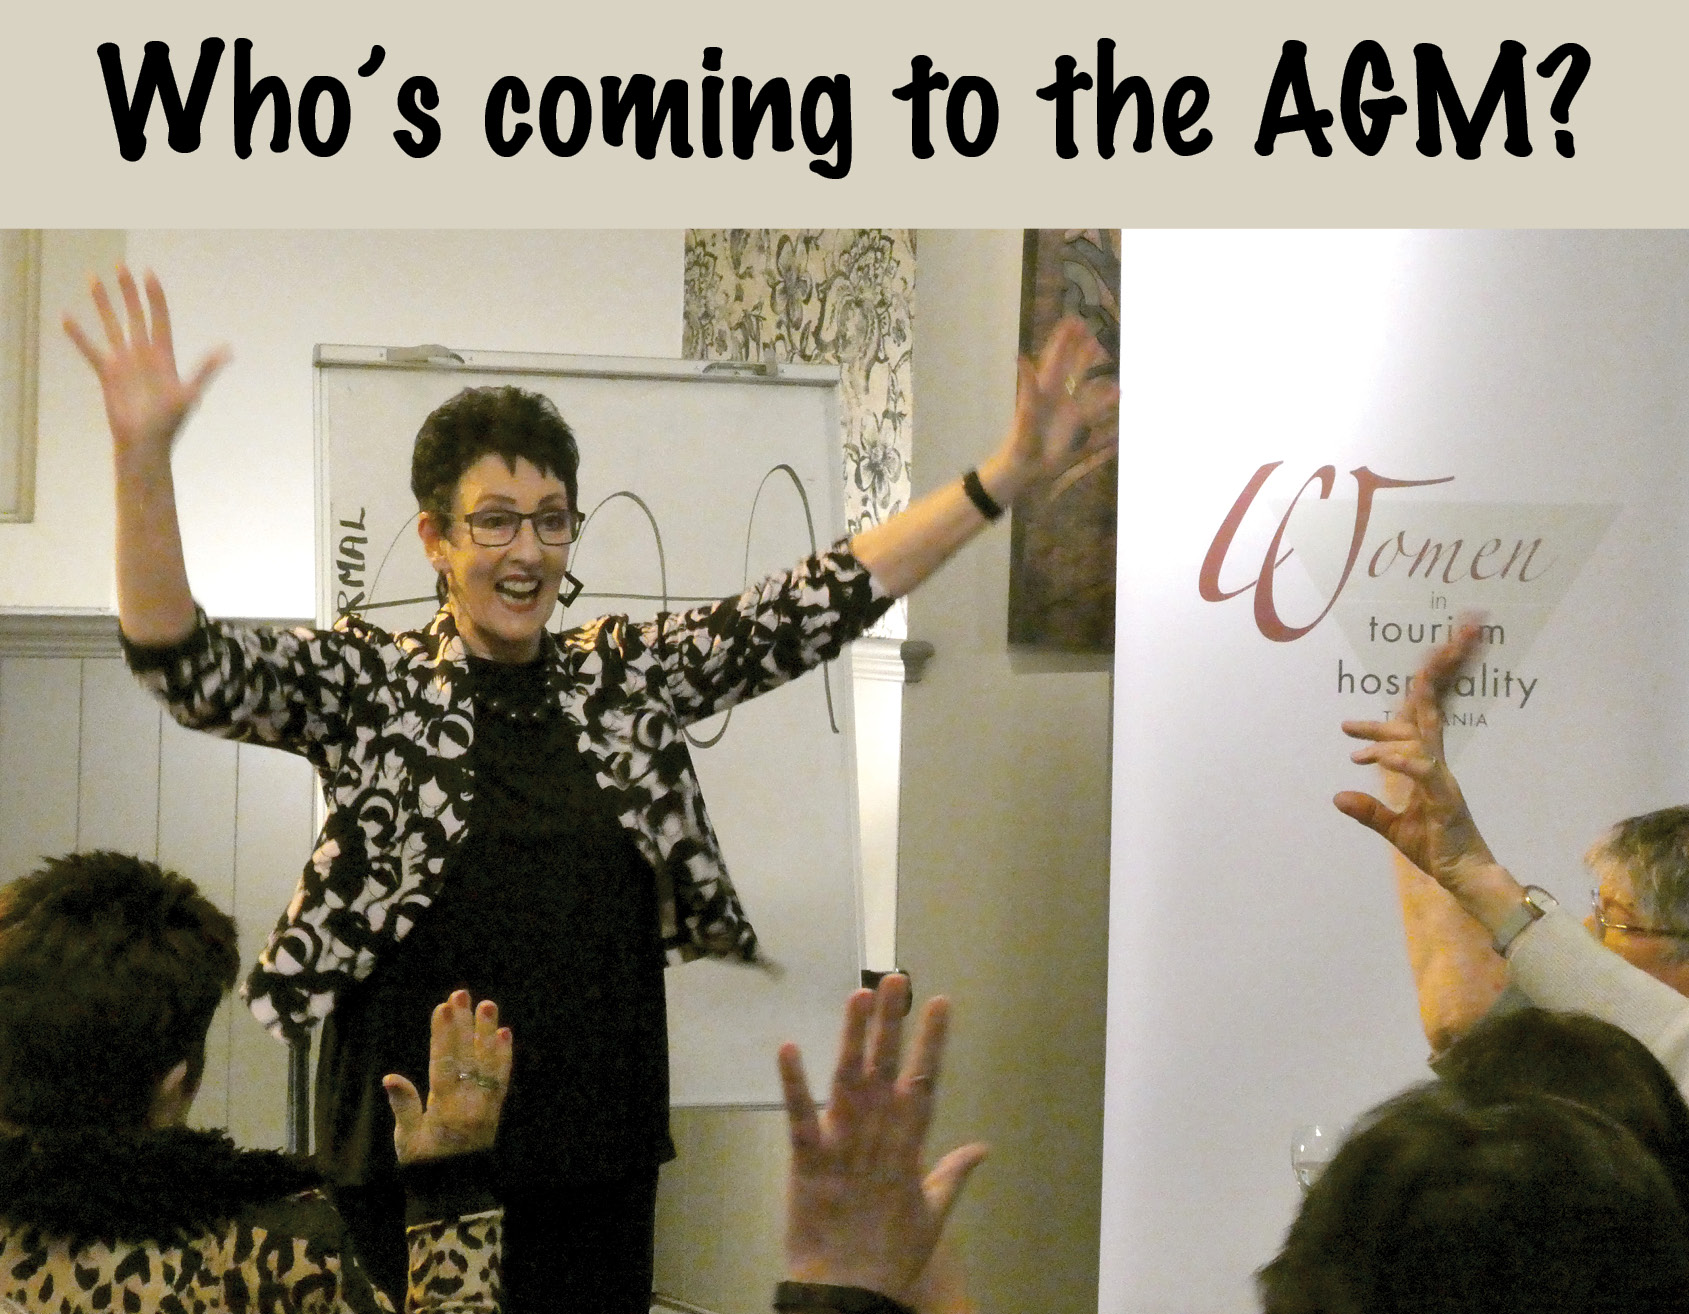 Invitation to AGM photo of Robyn Moore